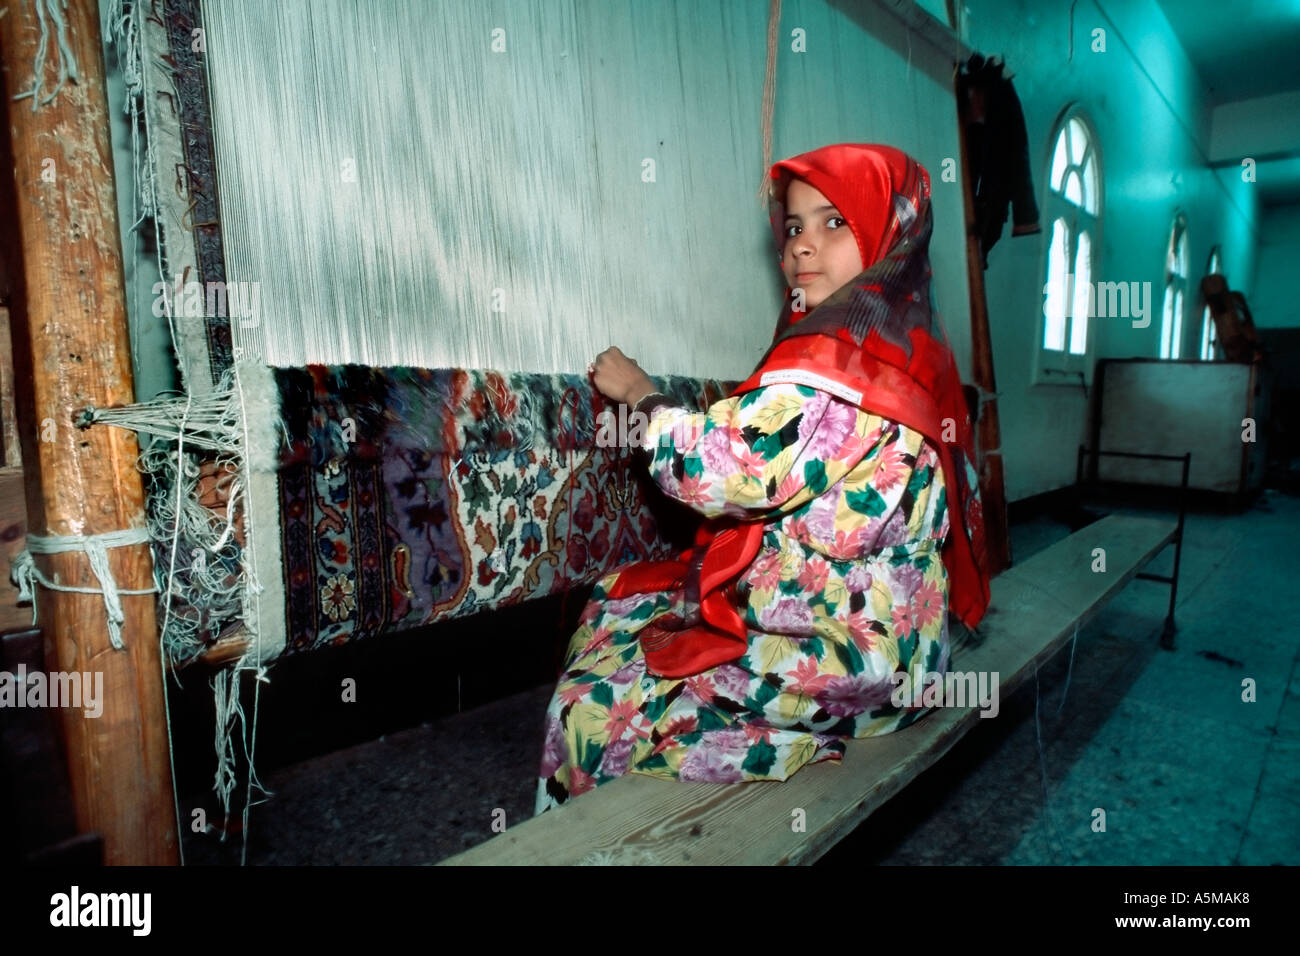 Saqqhrah, Egypt, Young Female Child Working in Carpet Factory Child Labor, Working Conditions, Schools from around the world - Stock Image